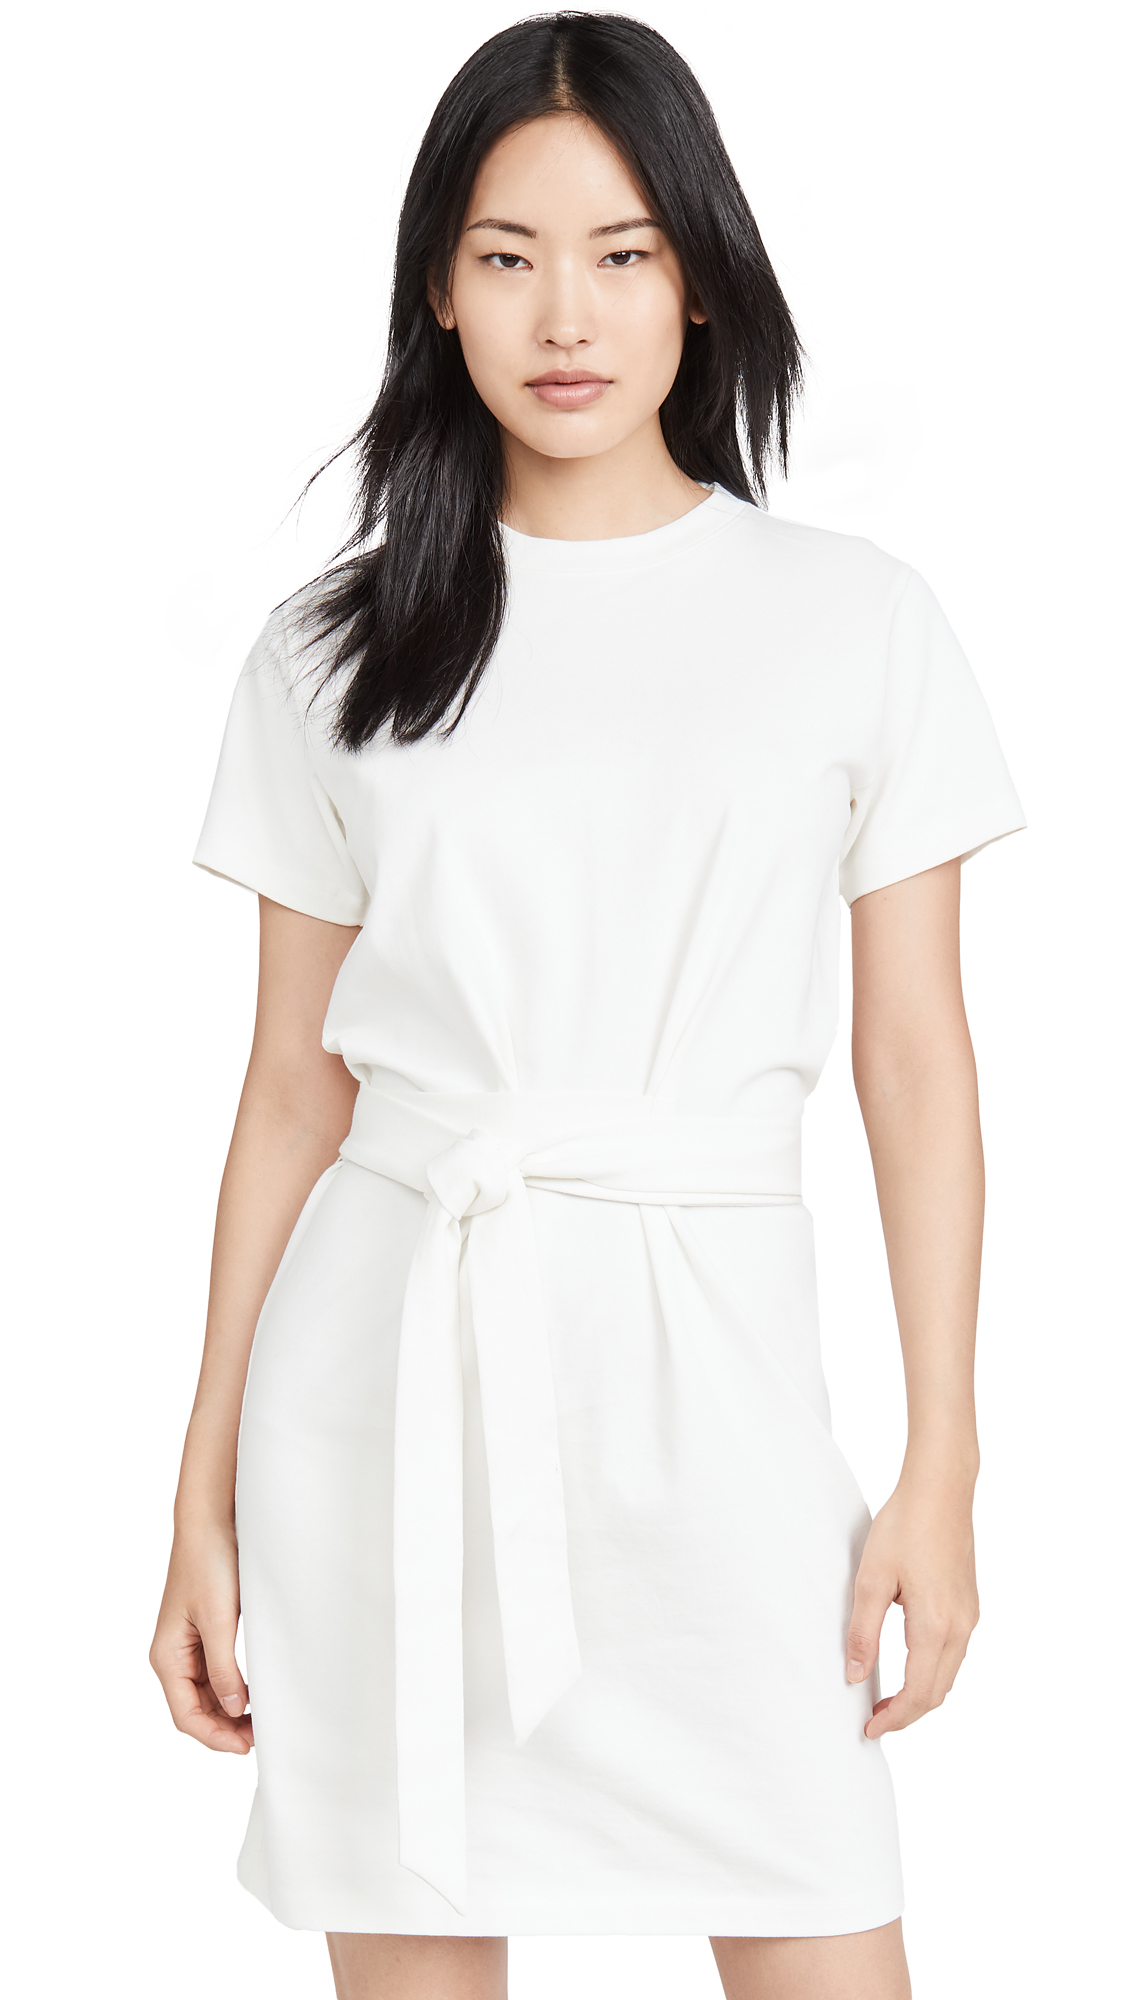 Vince Waist Tie Dress - 50% Off Sale